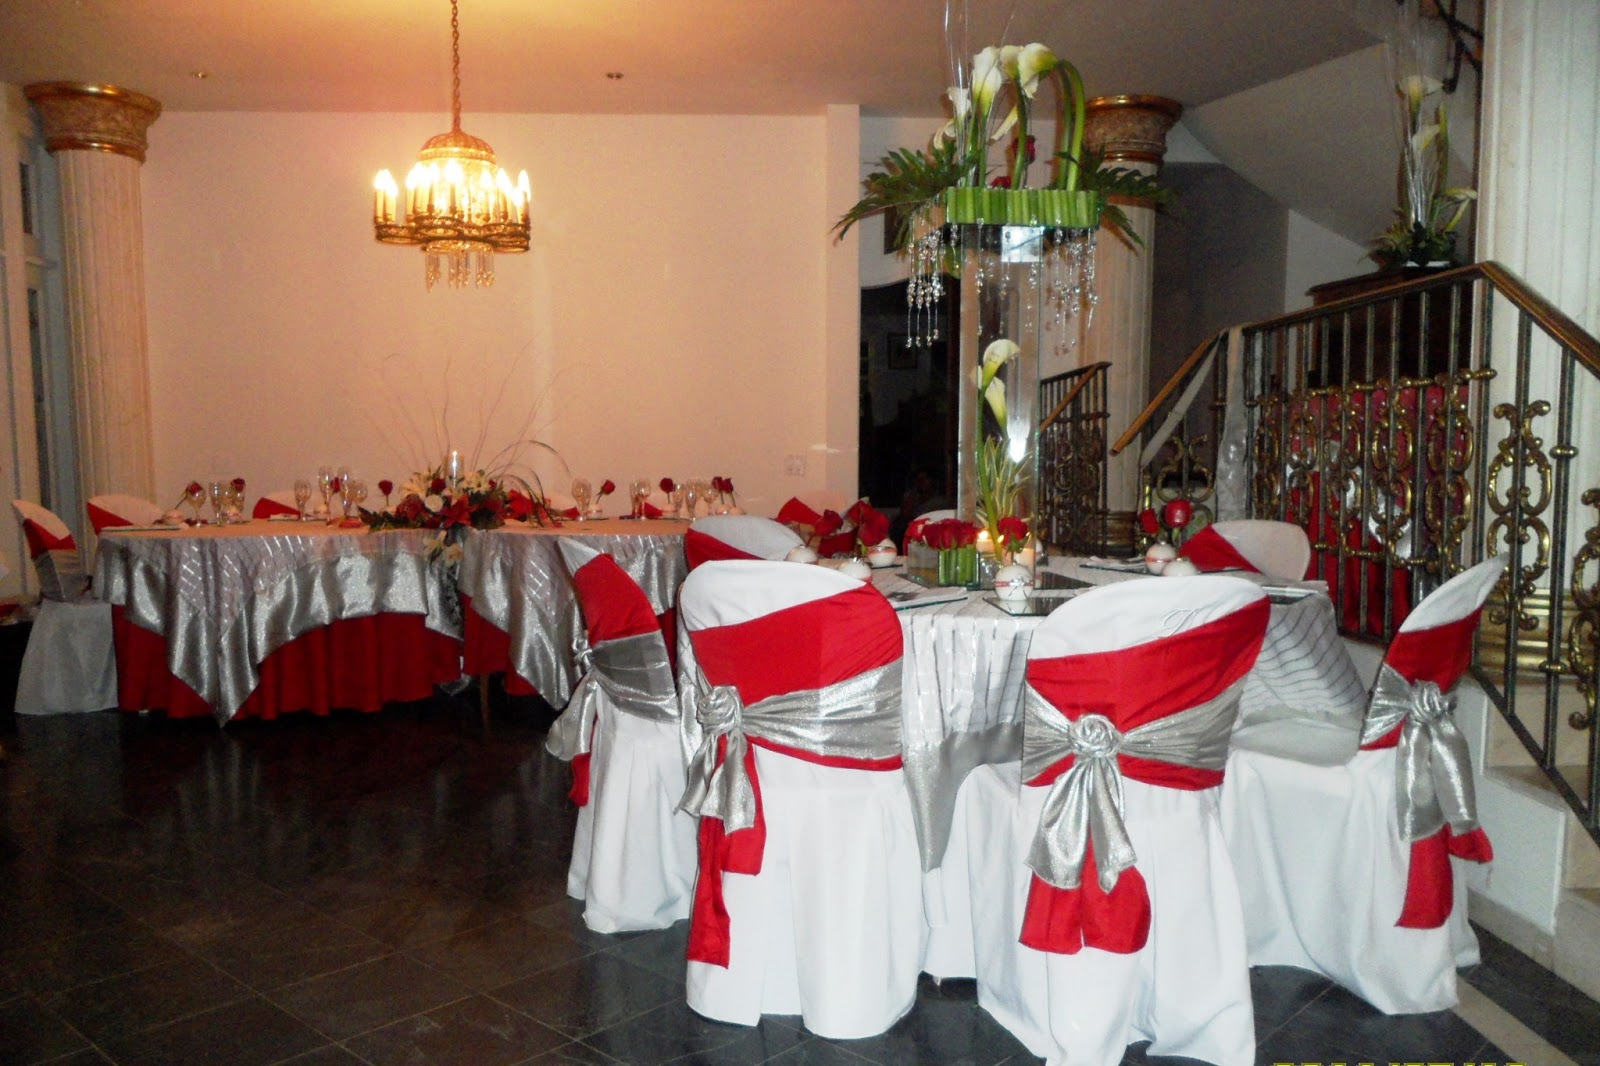 Decoracion matrimonio civil en casa for En casa decoracion